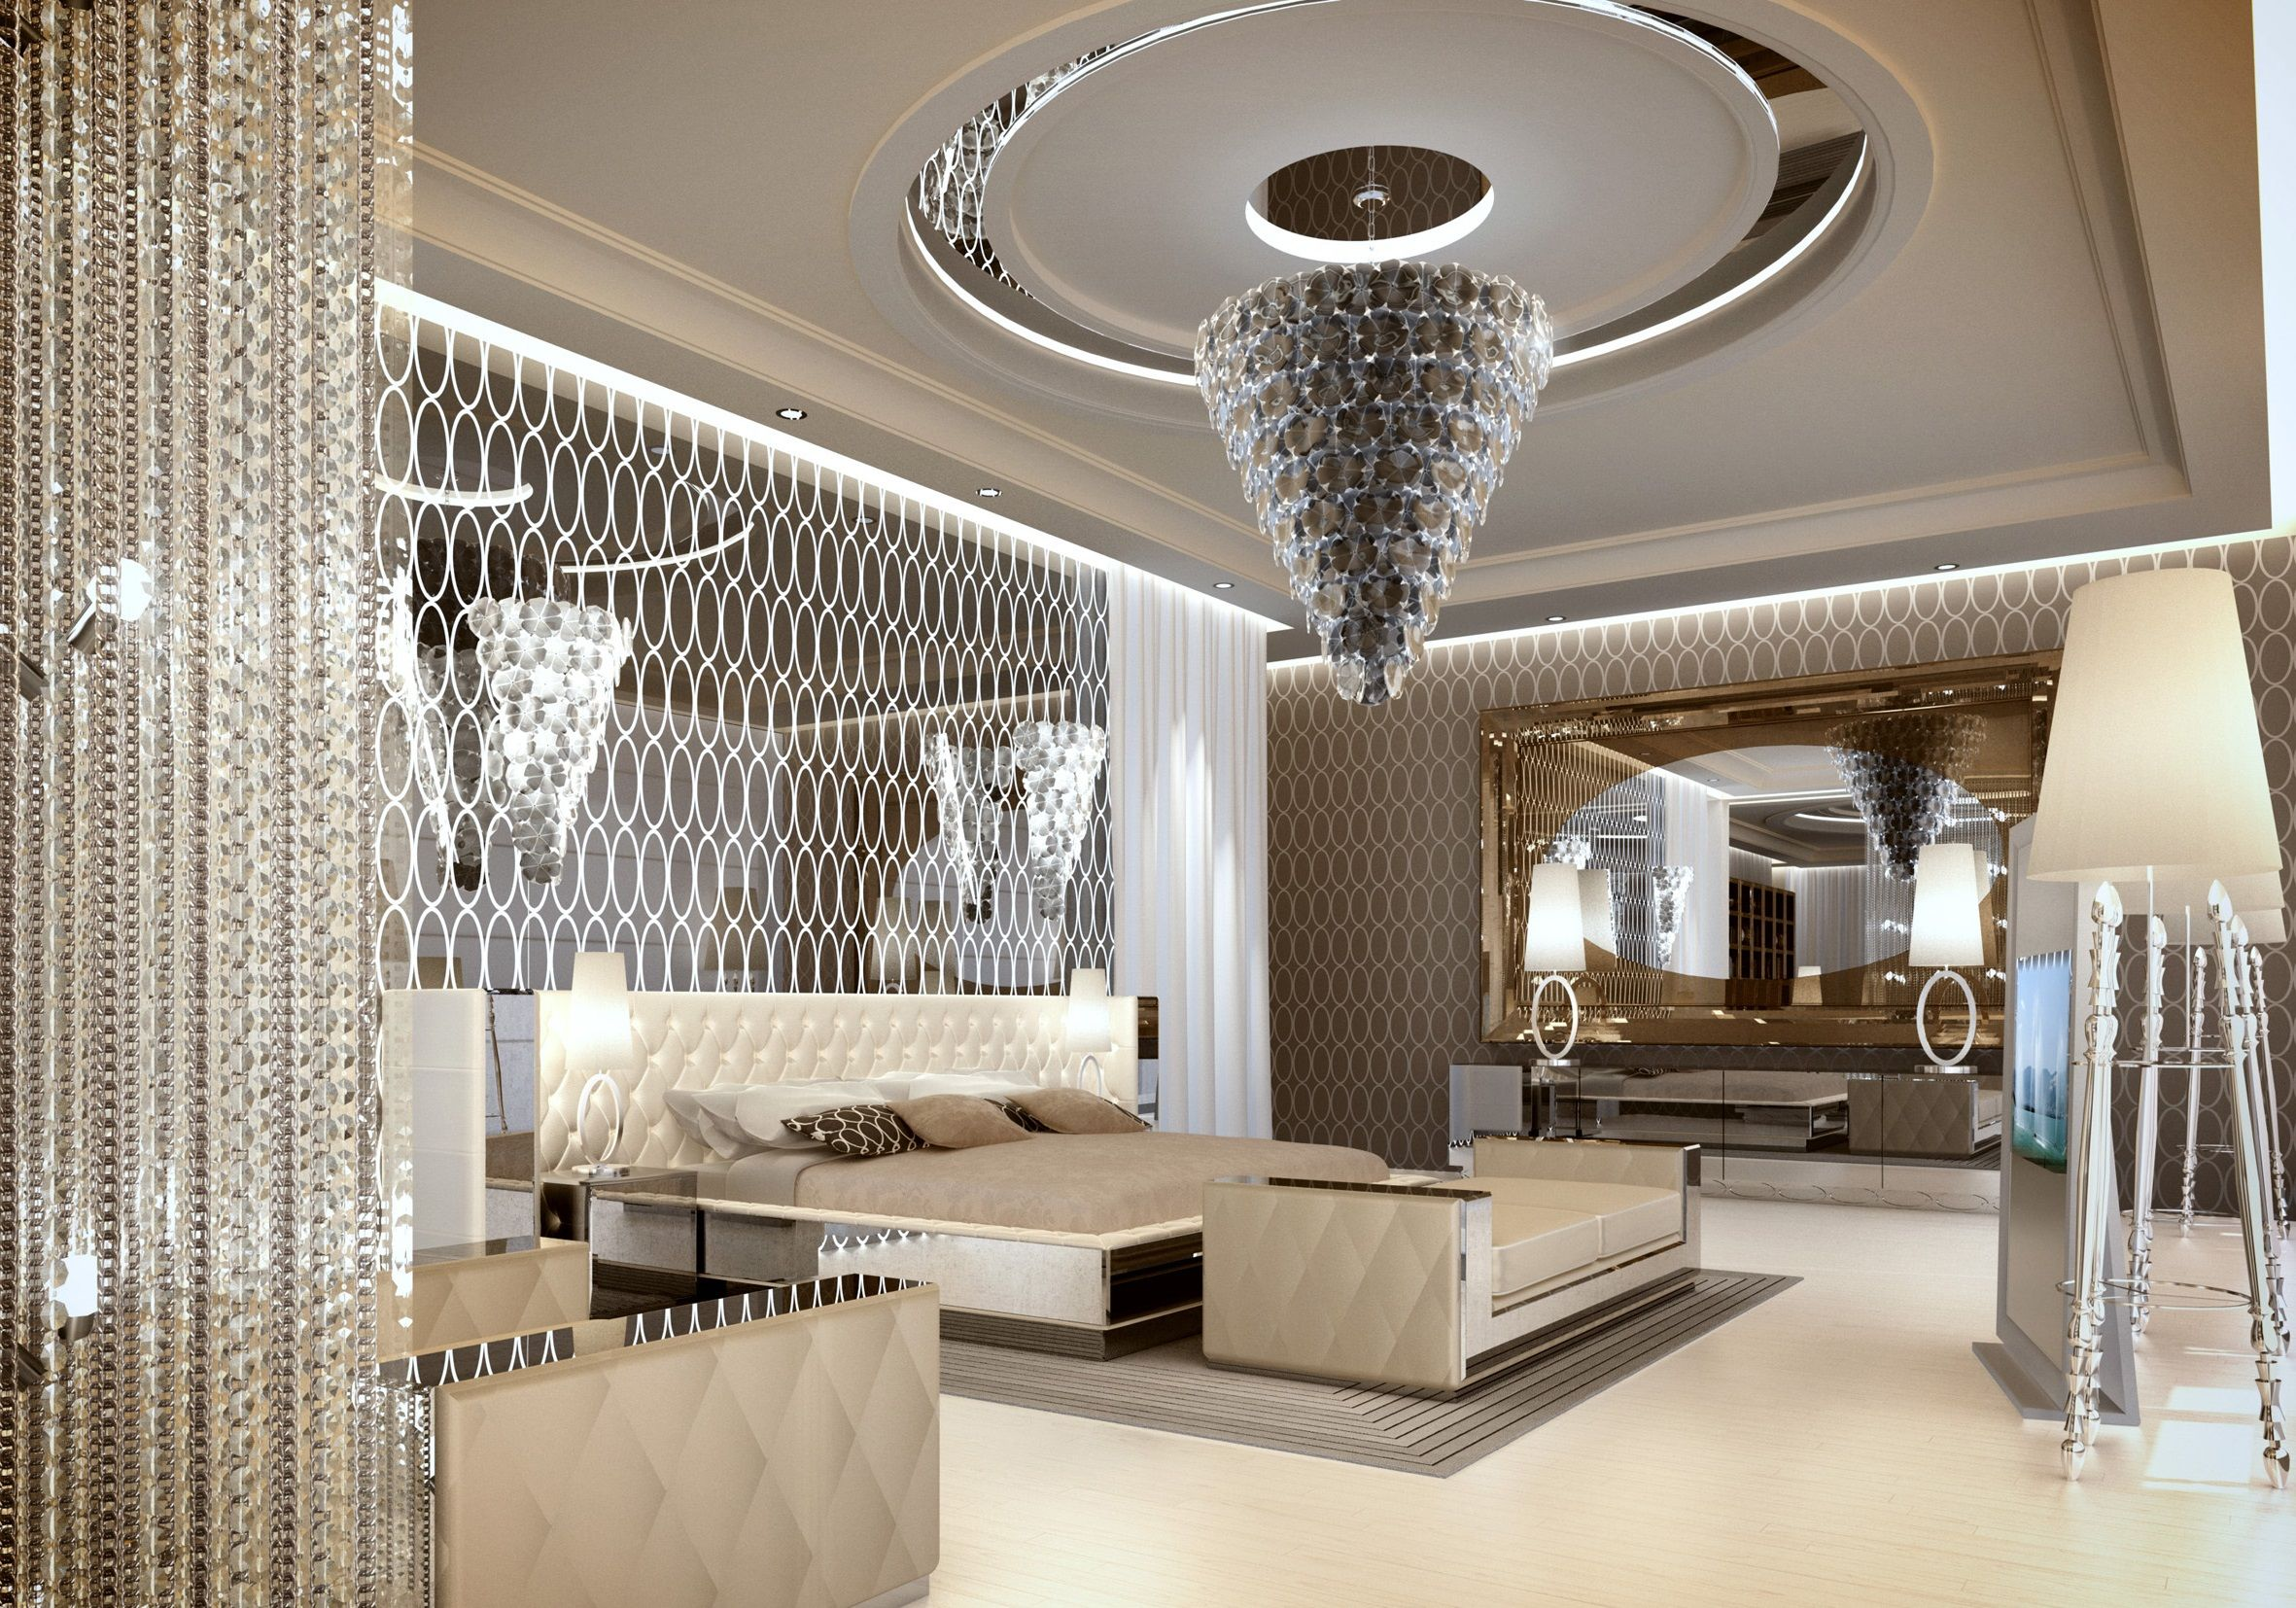 Luxury Interiors Ultra High End Signature Collection Designer Furniture Mirrors Lighting Decor Courtesy Of Instyle Beverly Hills